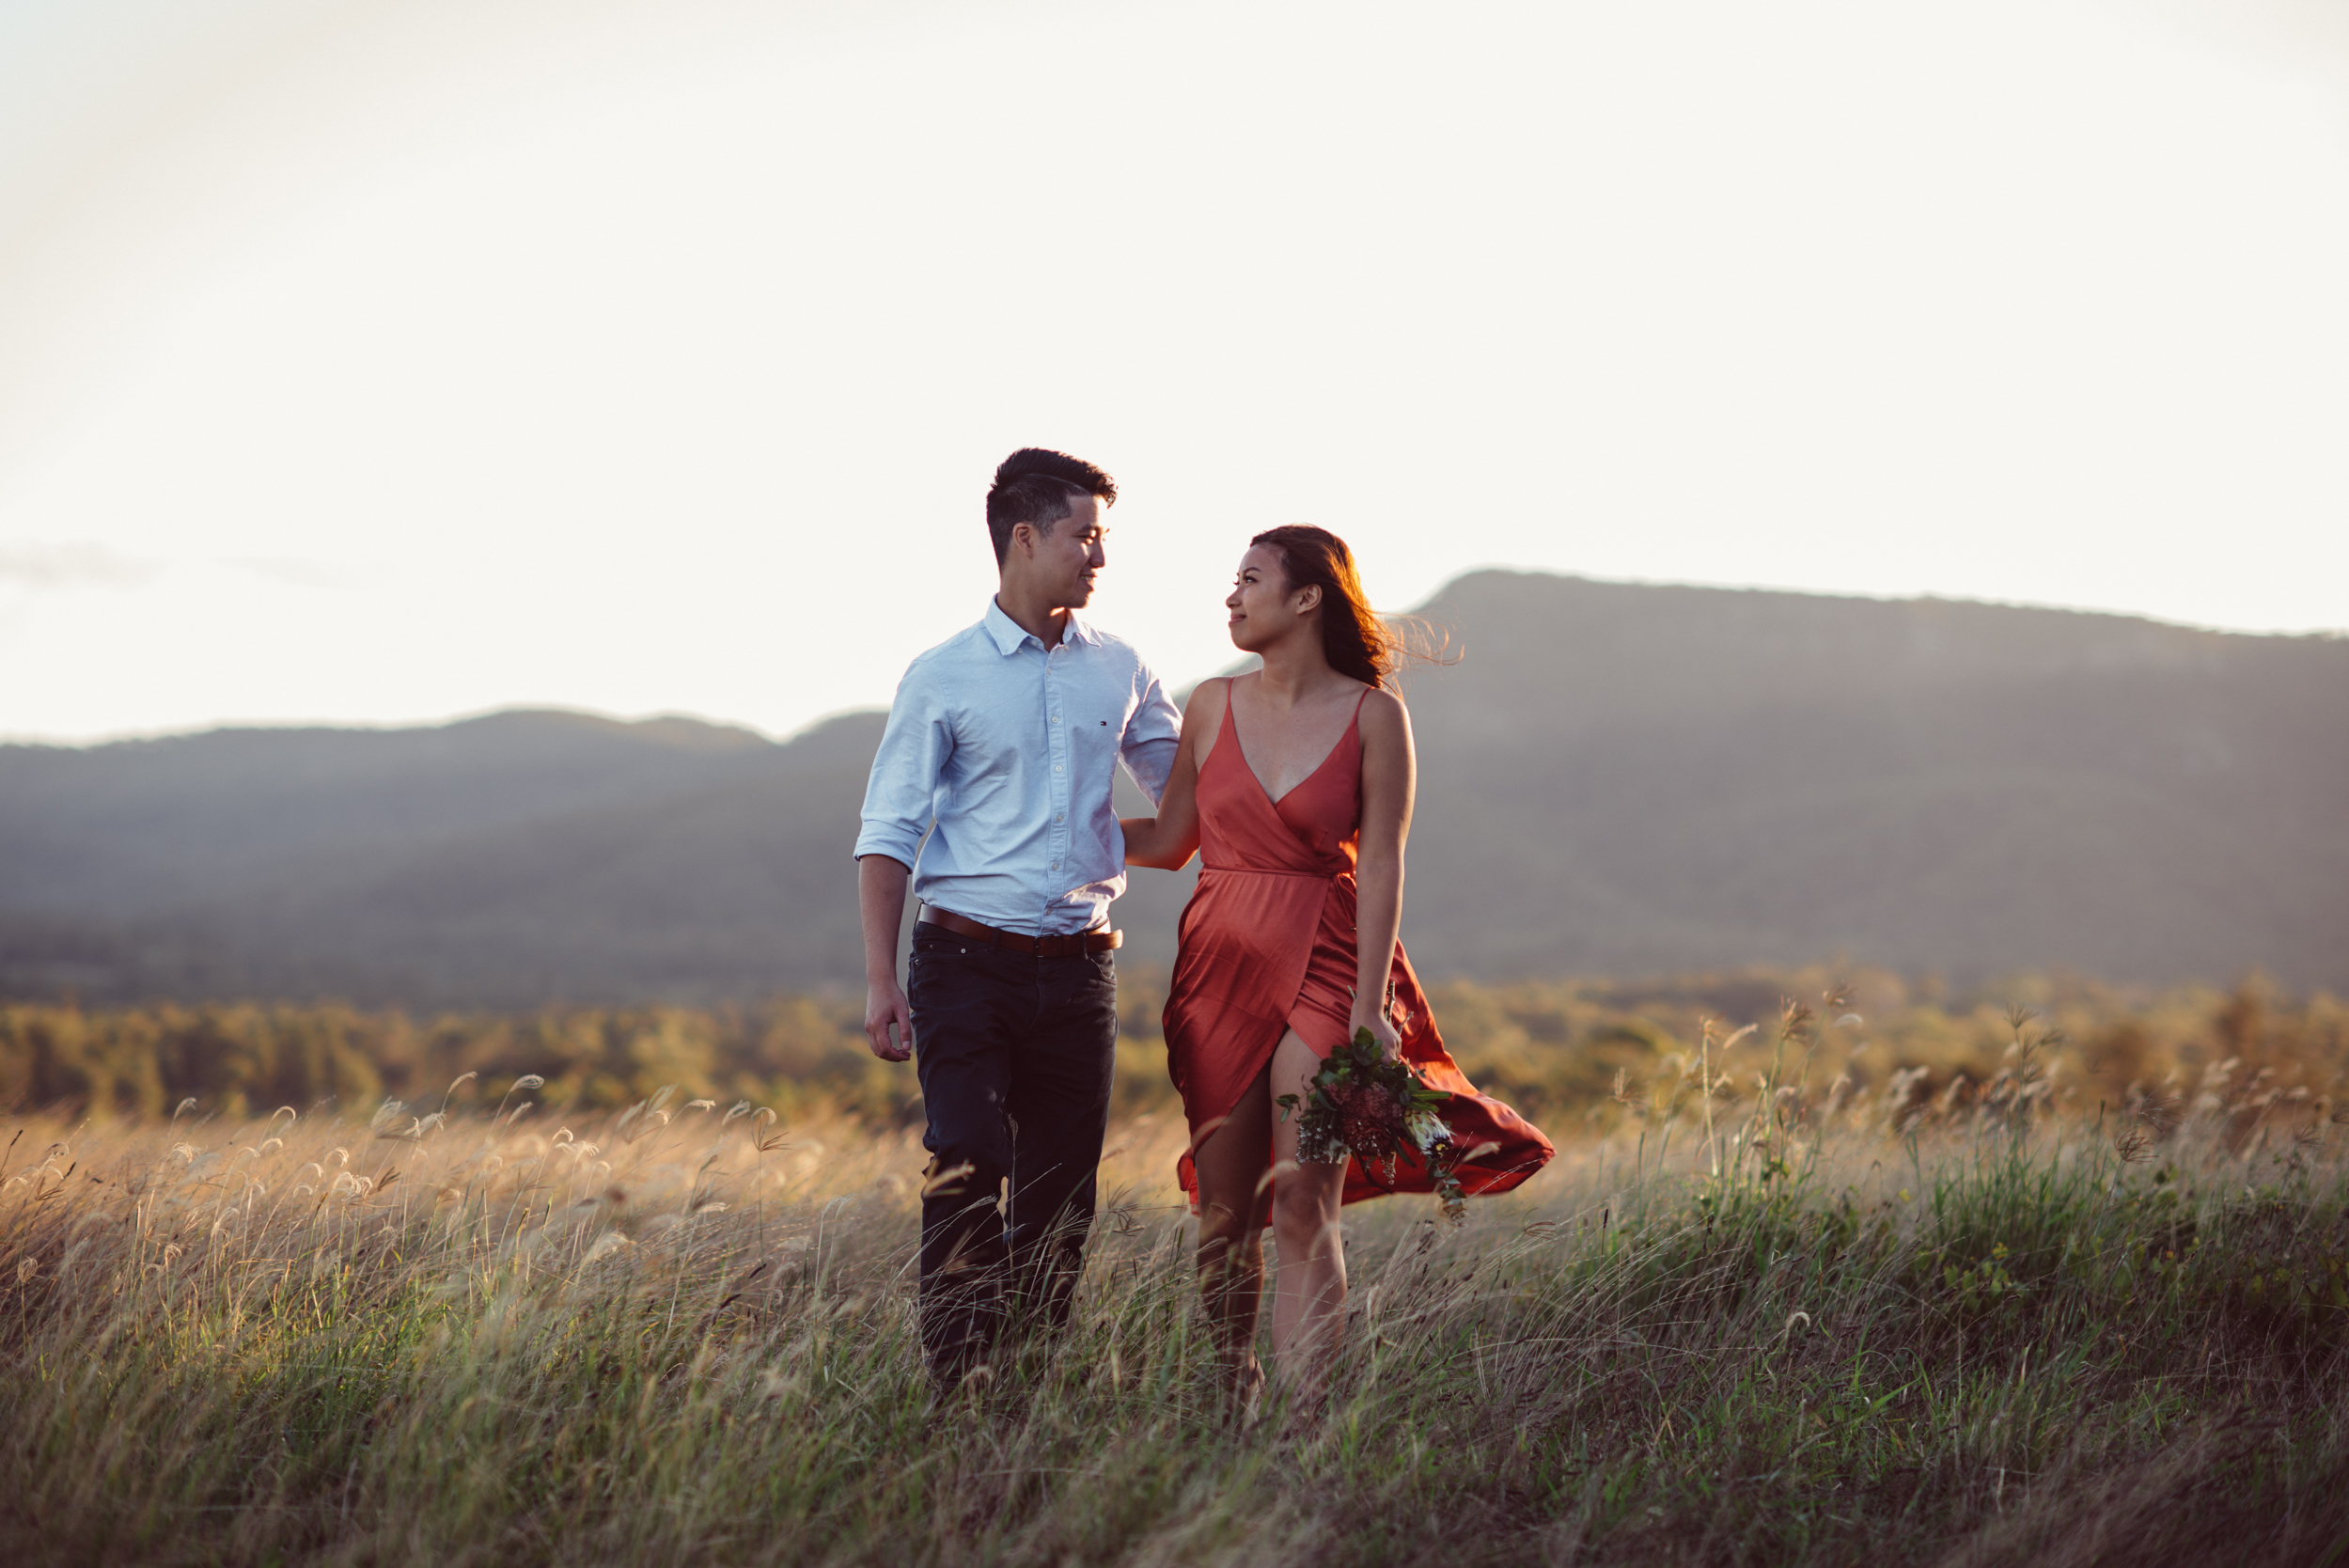 20180310 LOVELENSCAPES PHOTOGRAPHY X THI & ANTHONY • HUNTER VALLEY WINERY ENGAGEMENT PHOTOS • MOBILE SIZE • 8.jpg